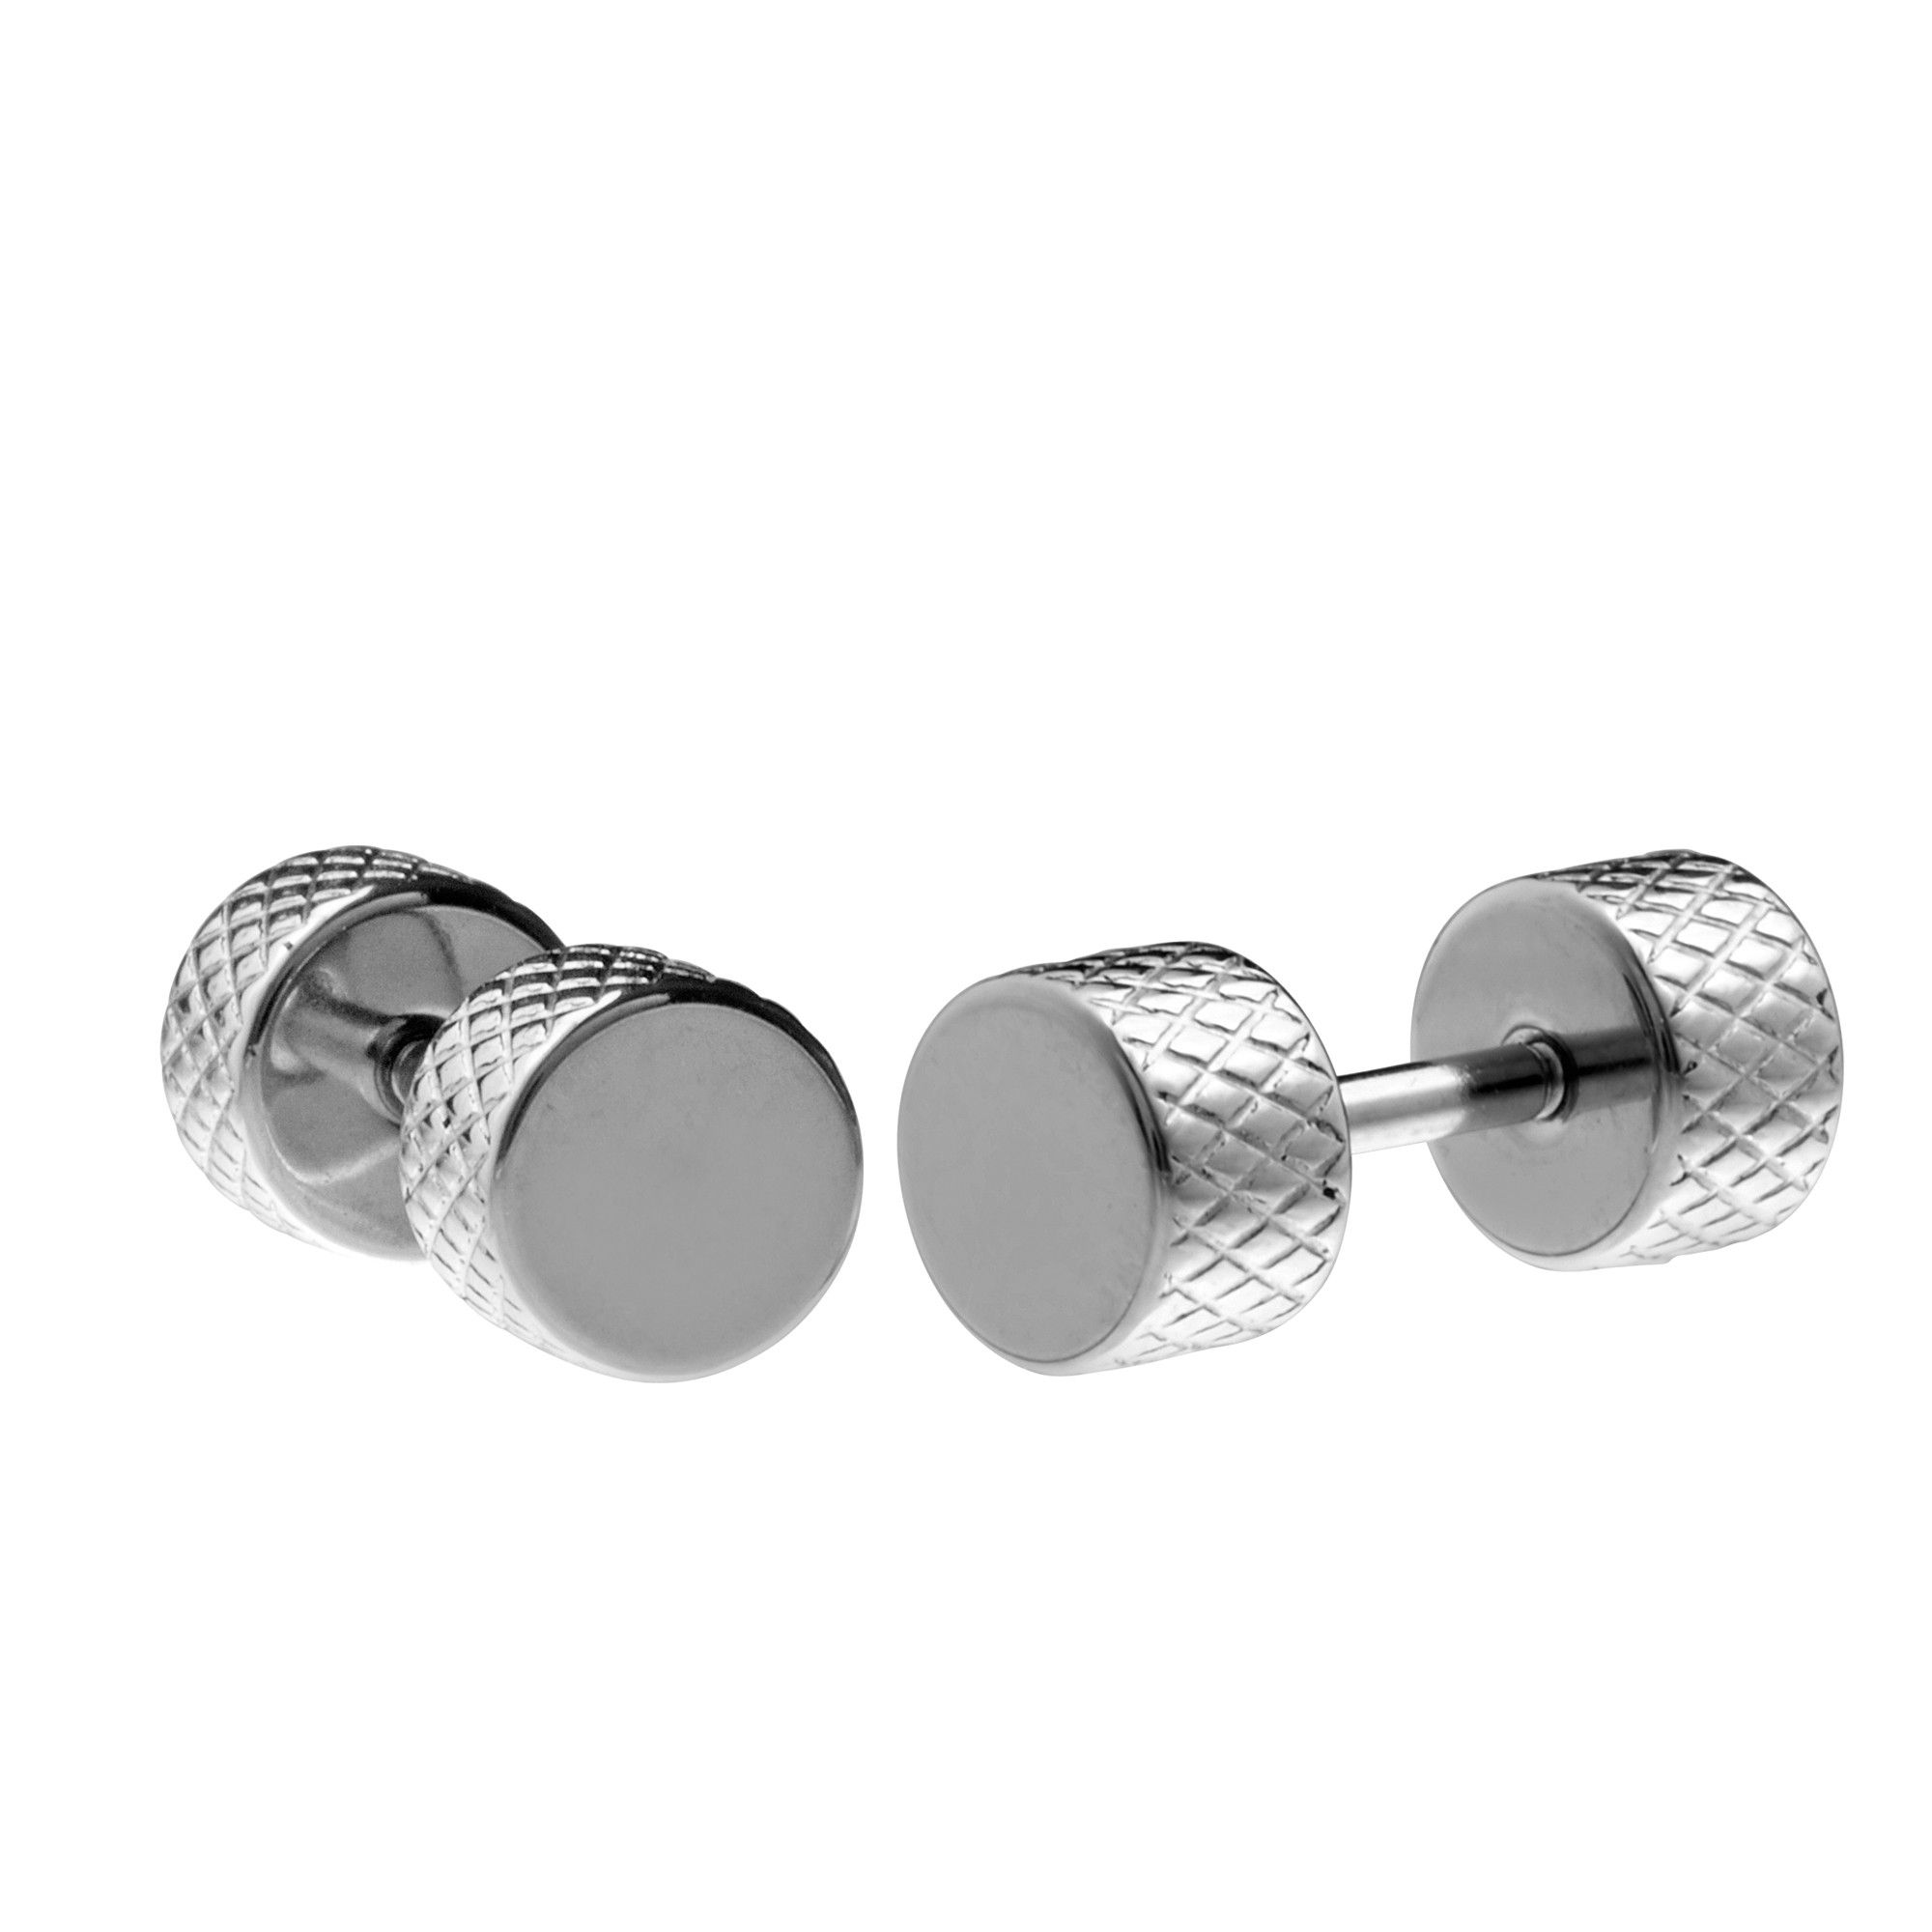 earrings hoop gun temego jewelry p clearance processing huggie steel set stainless mens black stud novelty